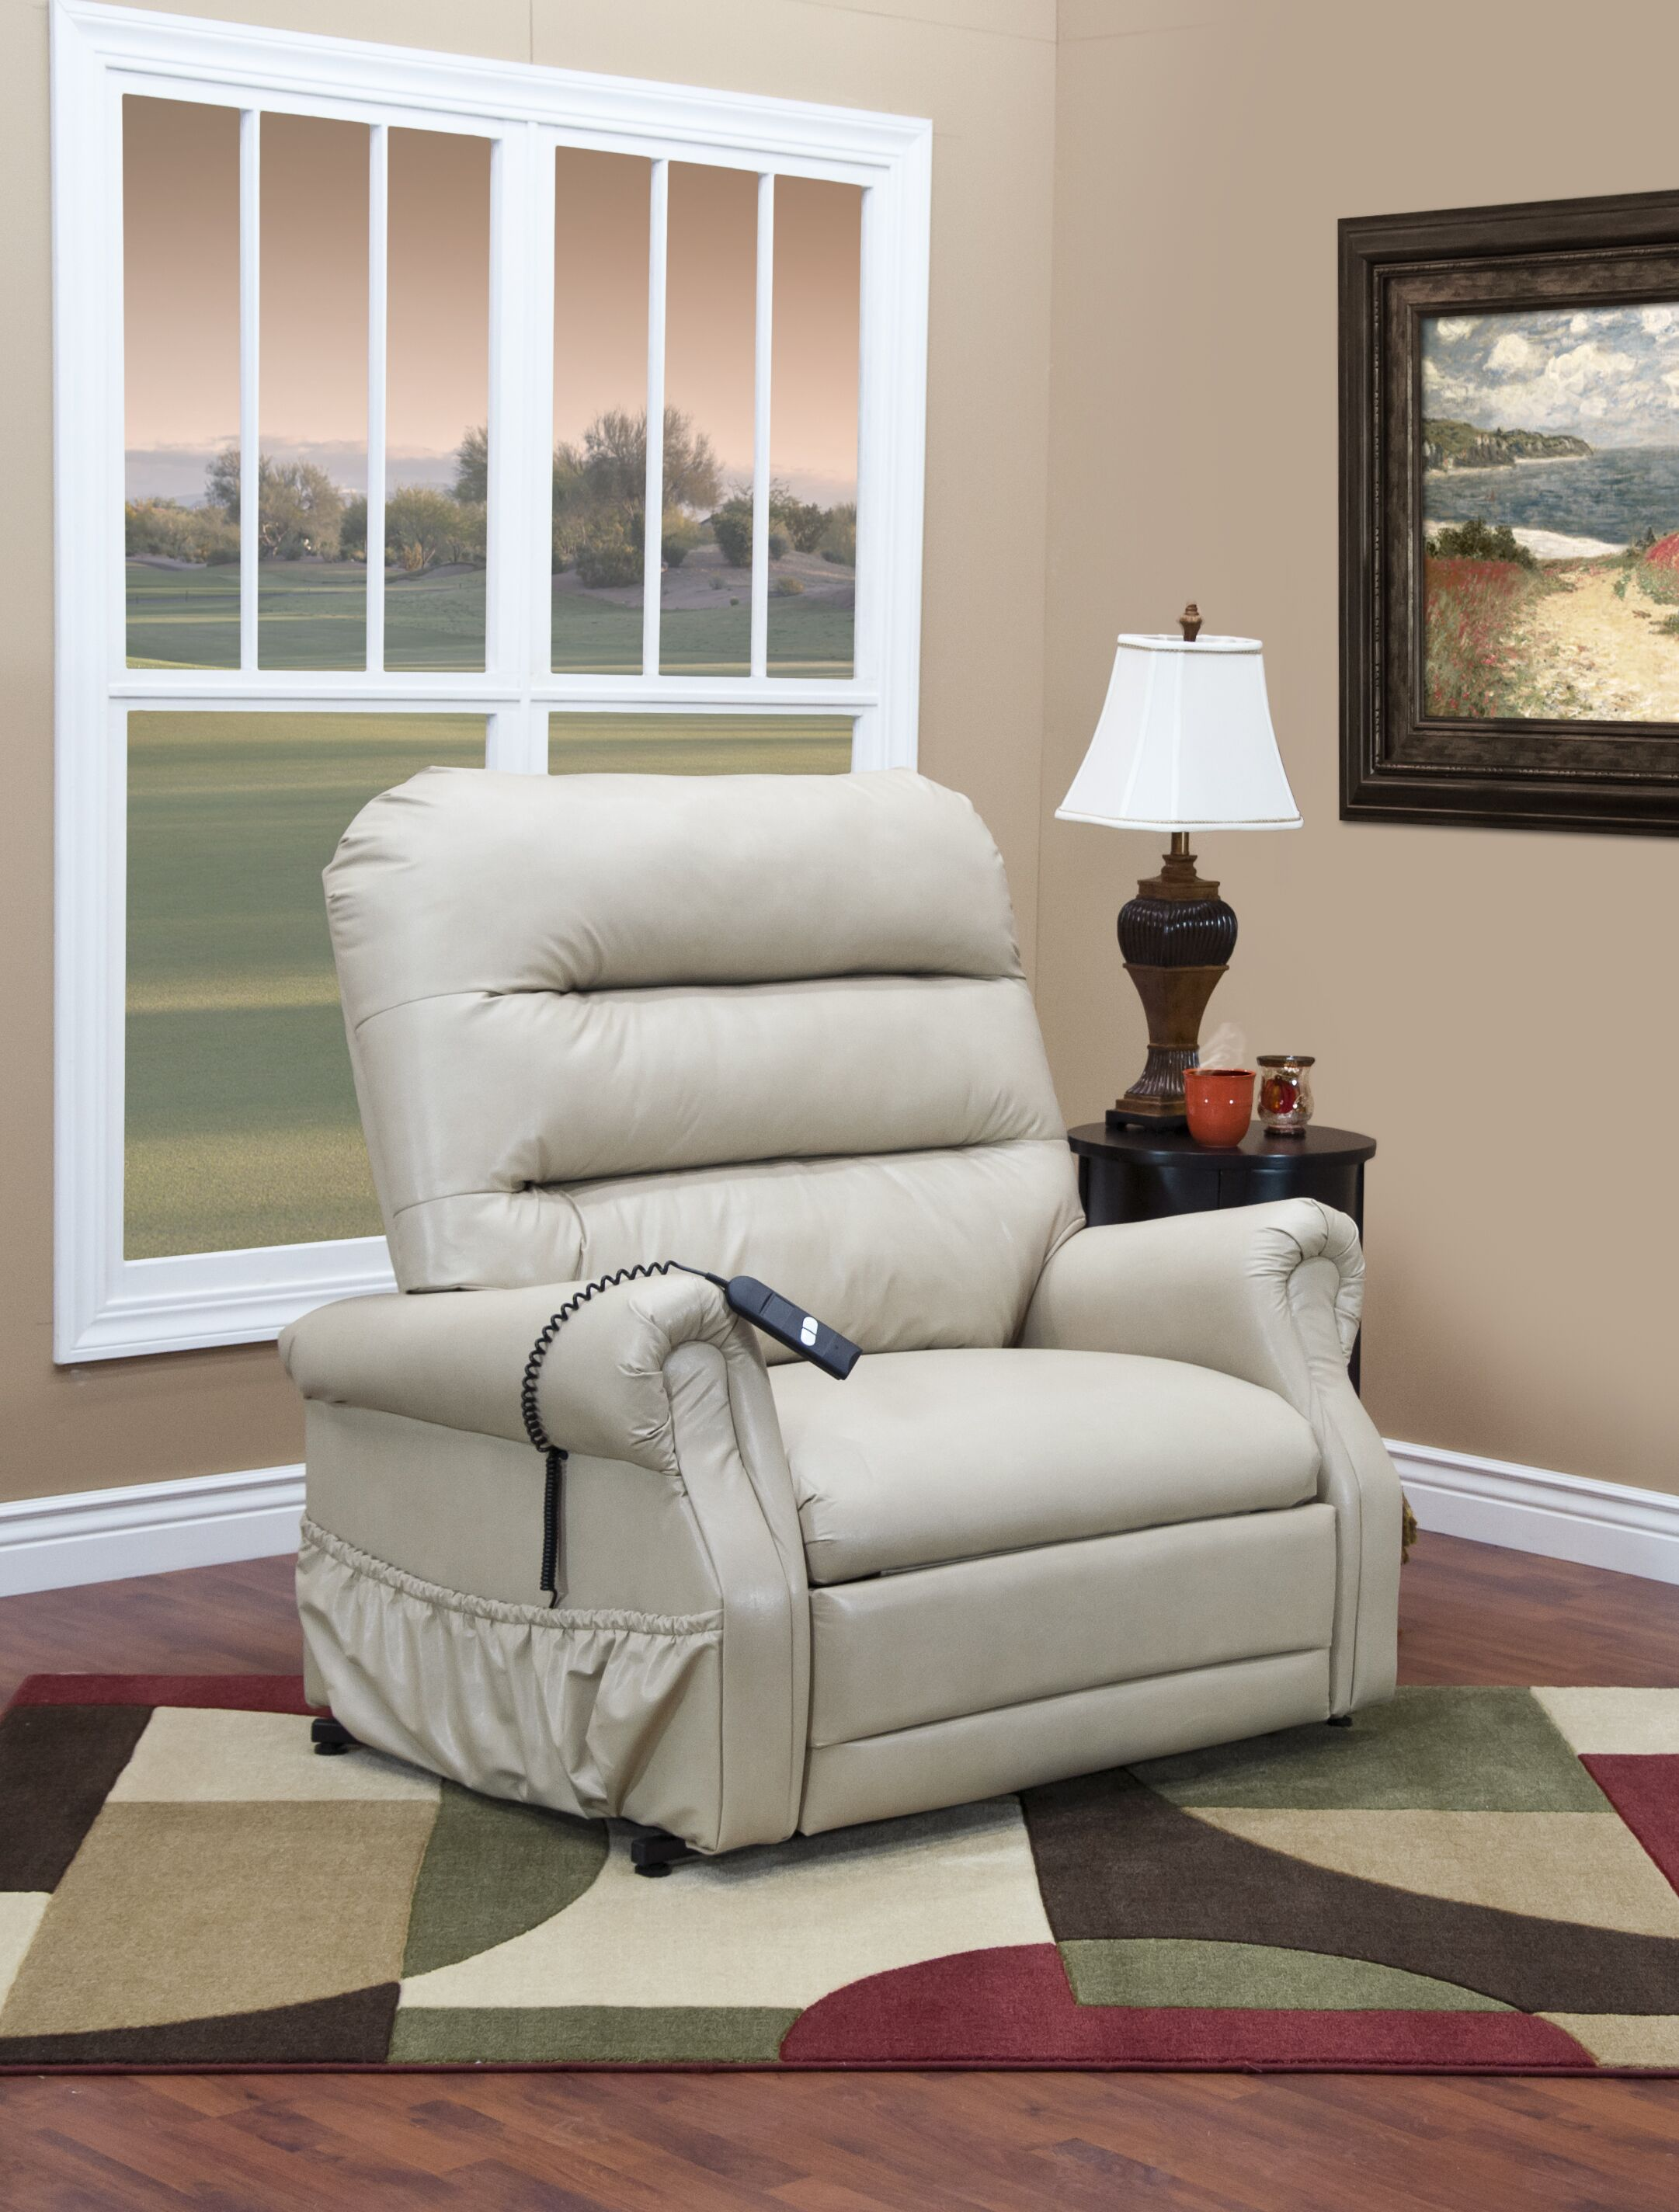 36 Series Power Lift Assist Recliner Upholstery: Bella Crypton - Storm, Moveable Infrared Heat: No, Vibration and Heat: None